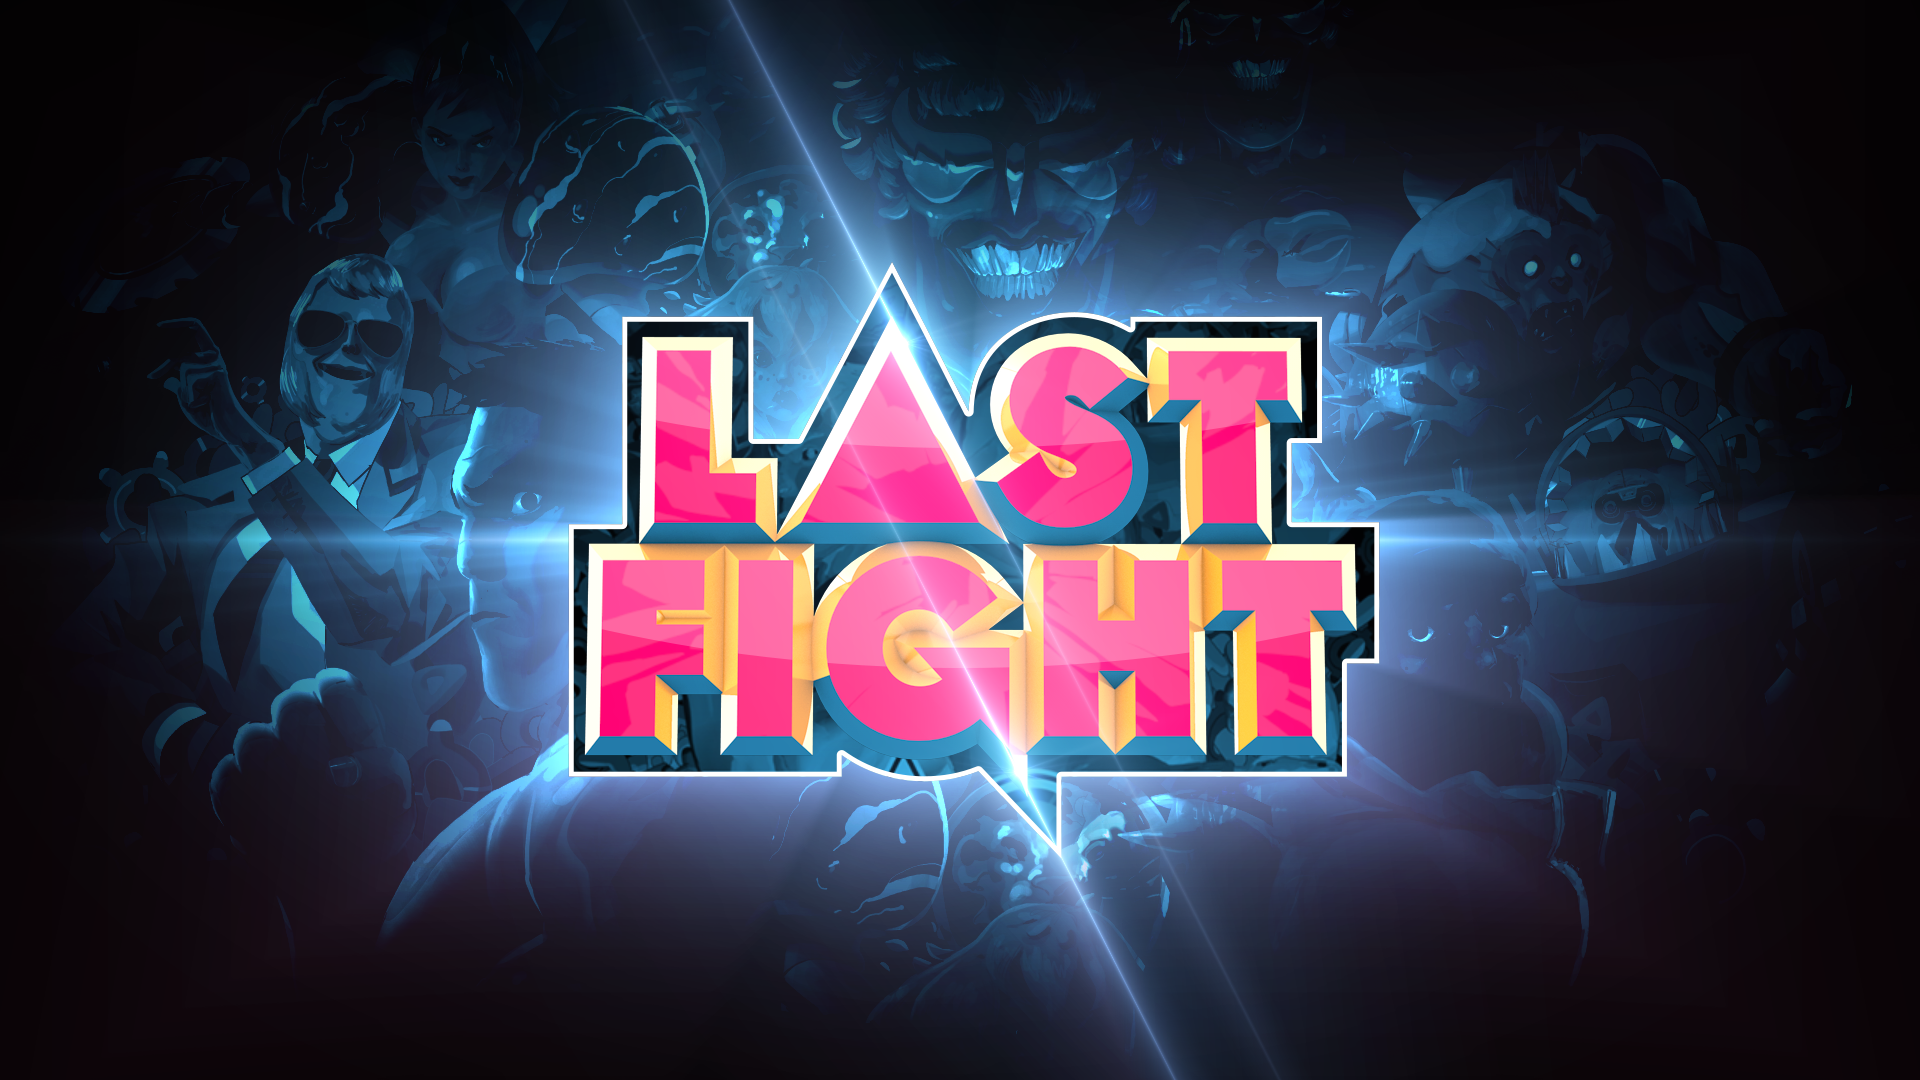 LASTFIGHT-poster_packshot.png